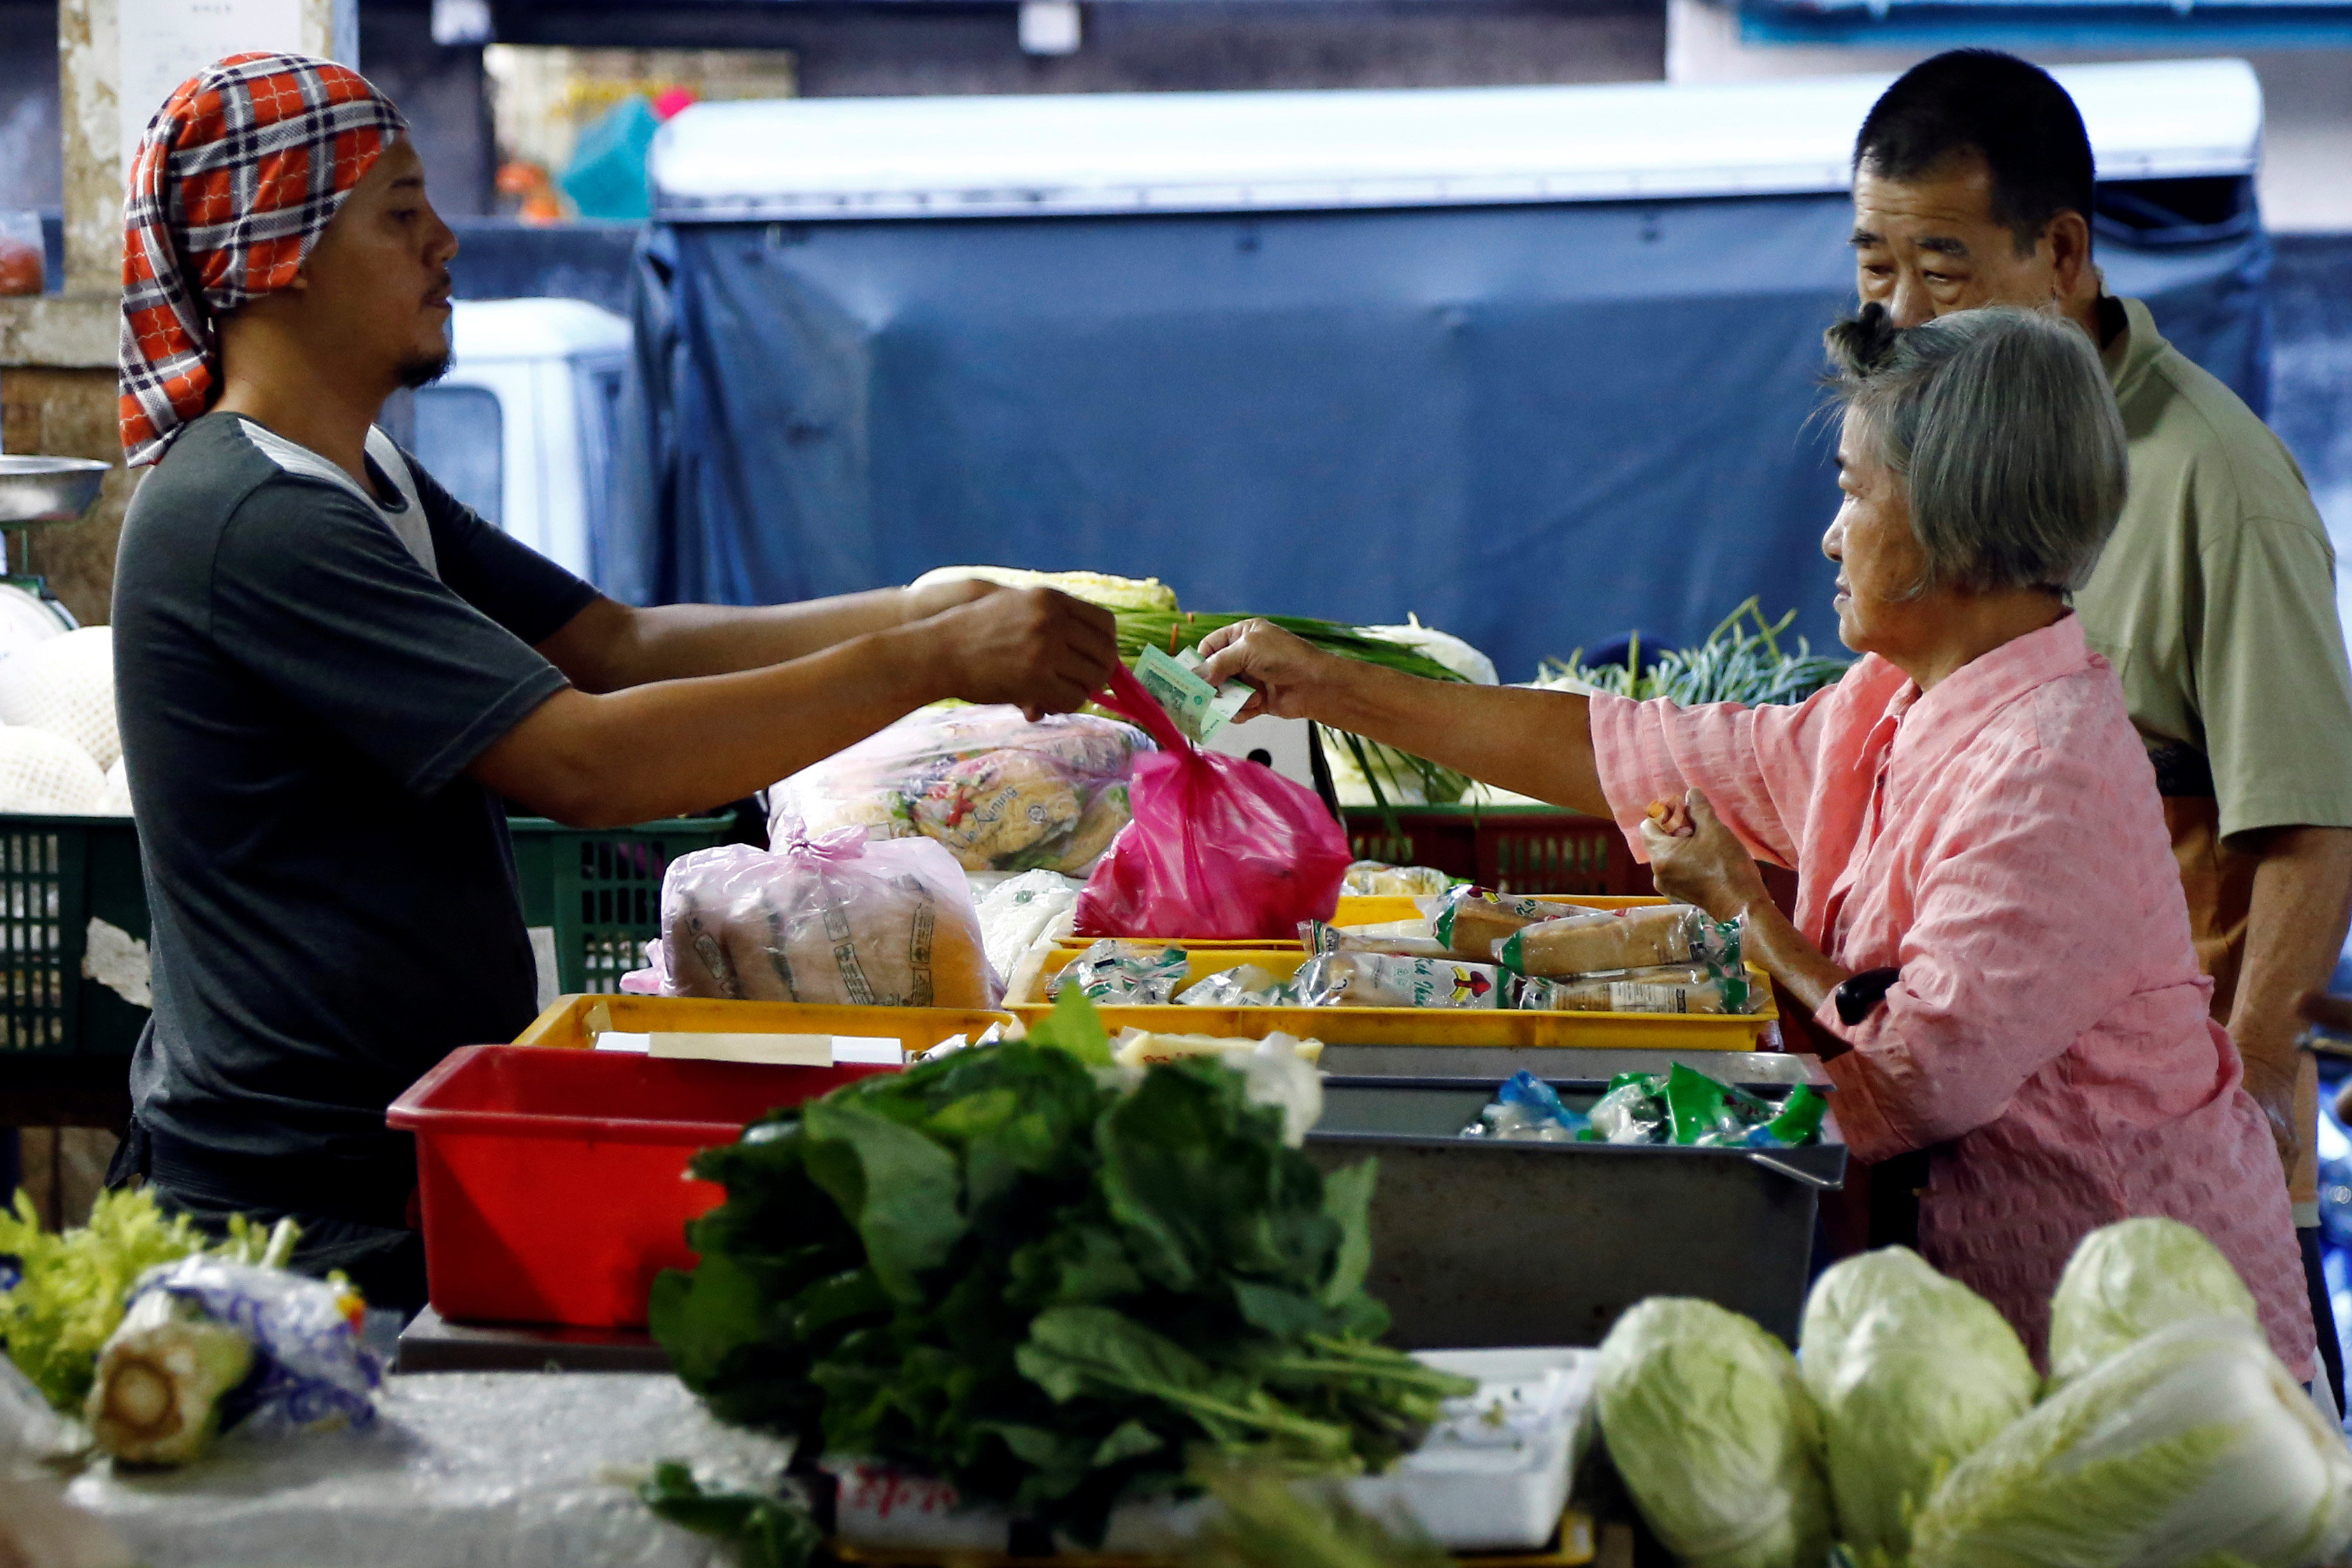 A customer pays for vegetables at a wet market in Klang, outside Kuala Lumpur. — Reuters pic